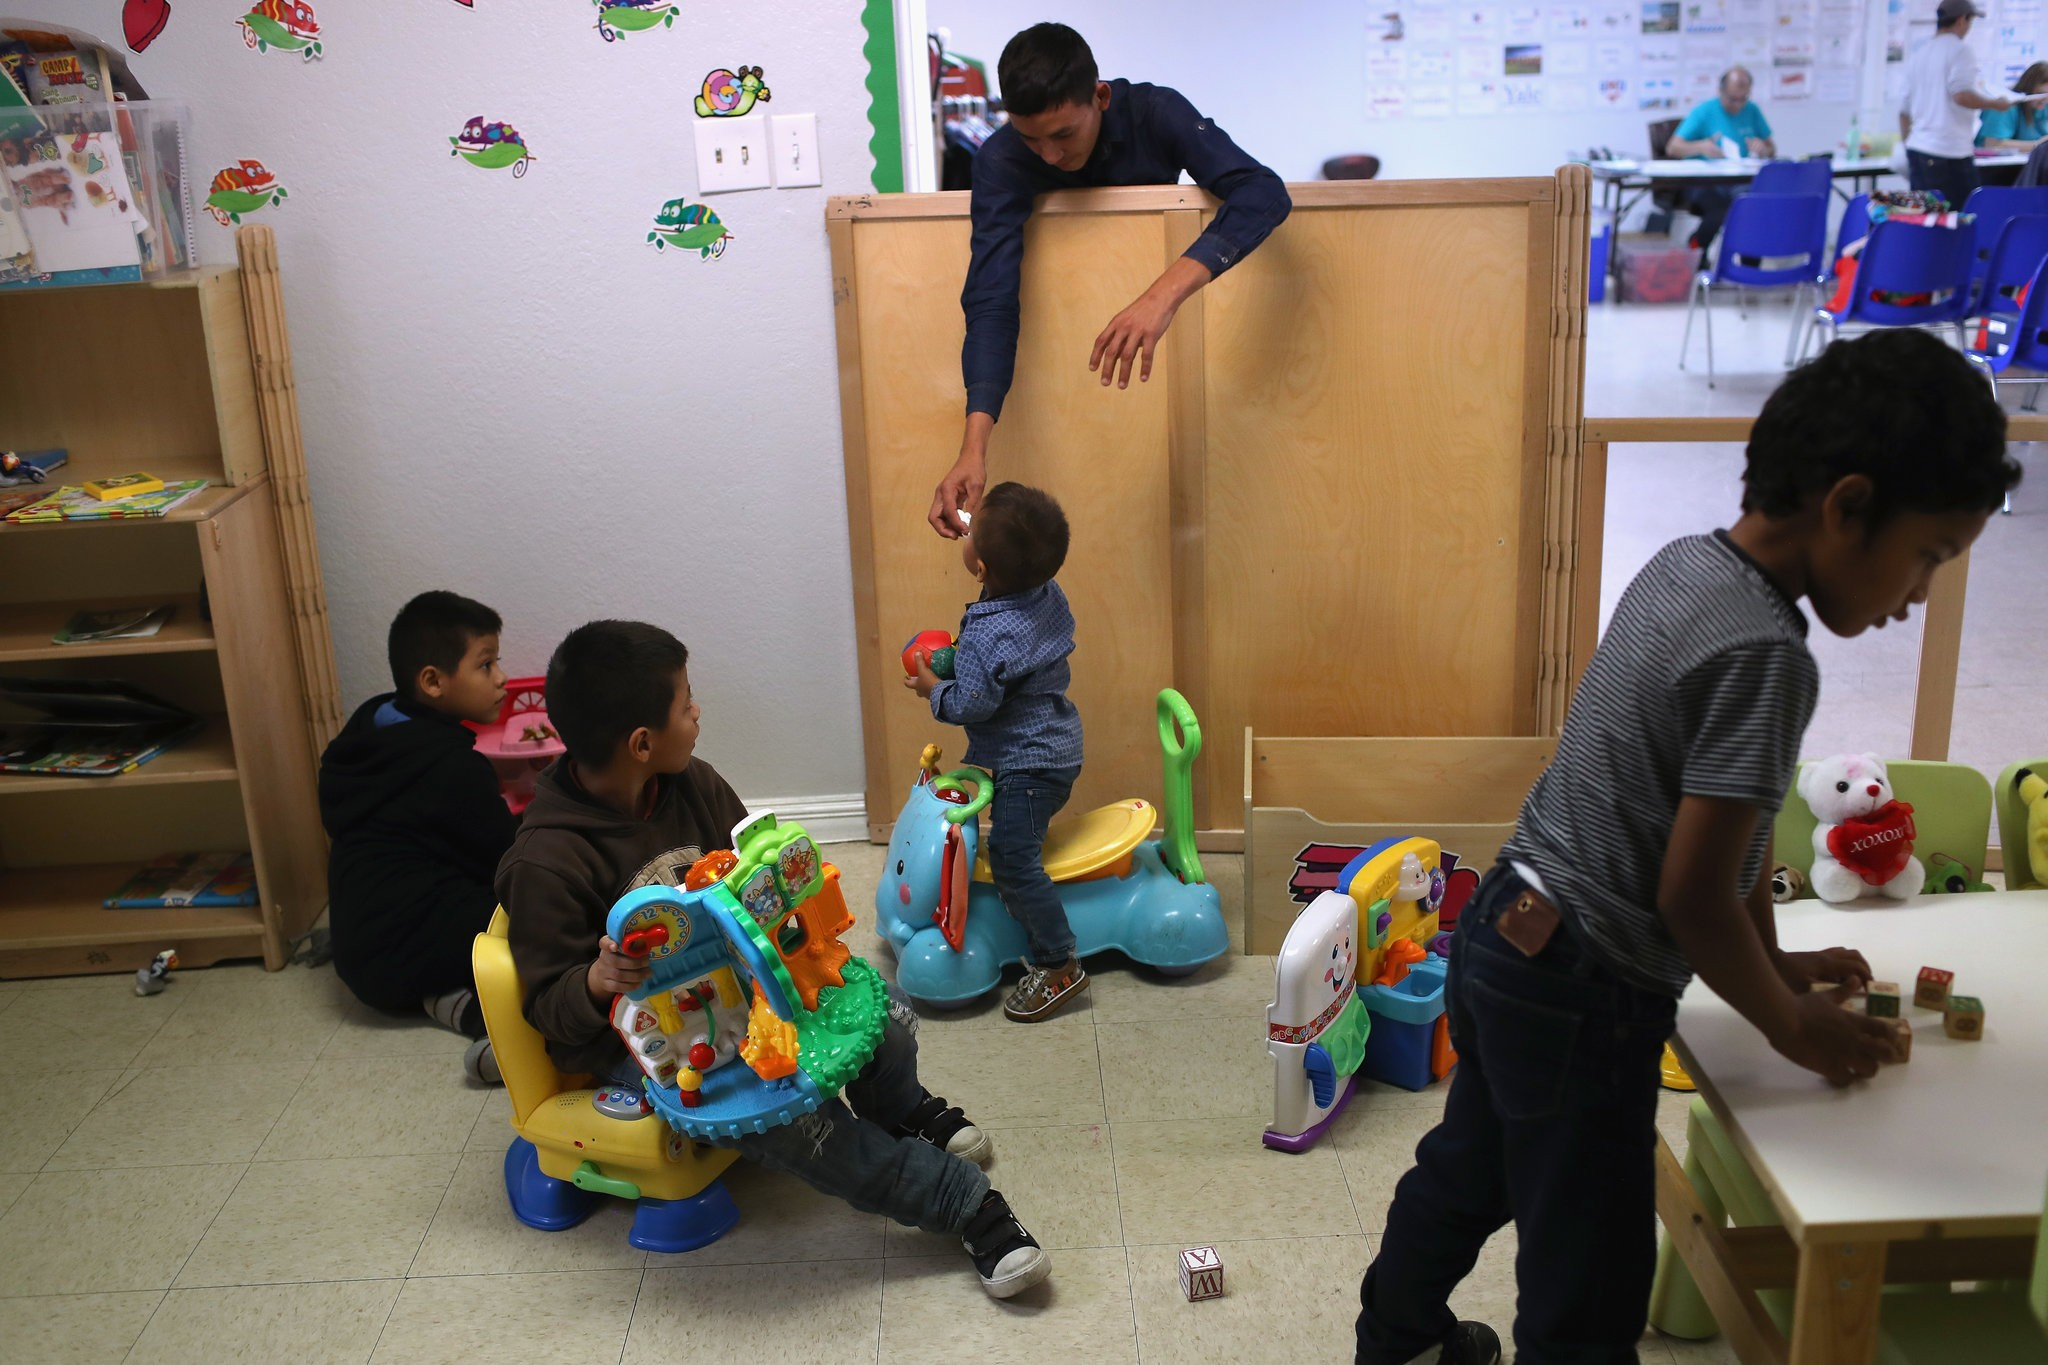 Central American children at an immigrant respite center in McAllen, Tex., after their families were released by United States immigration officials in February. Source: NYT. Credit: John Moore/Getty Images